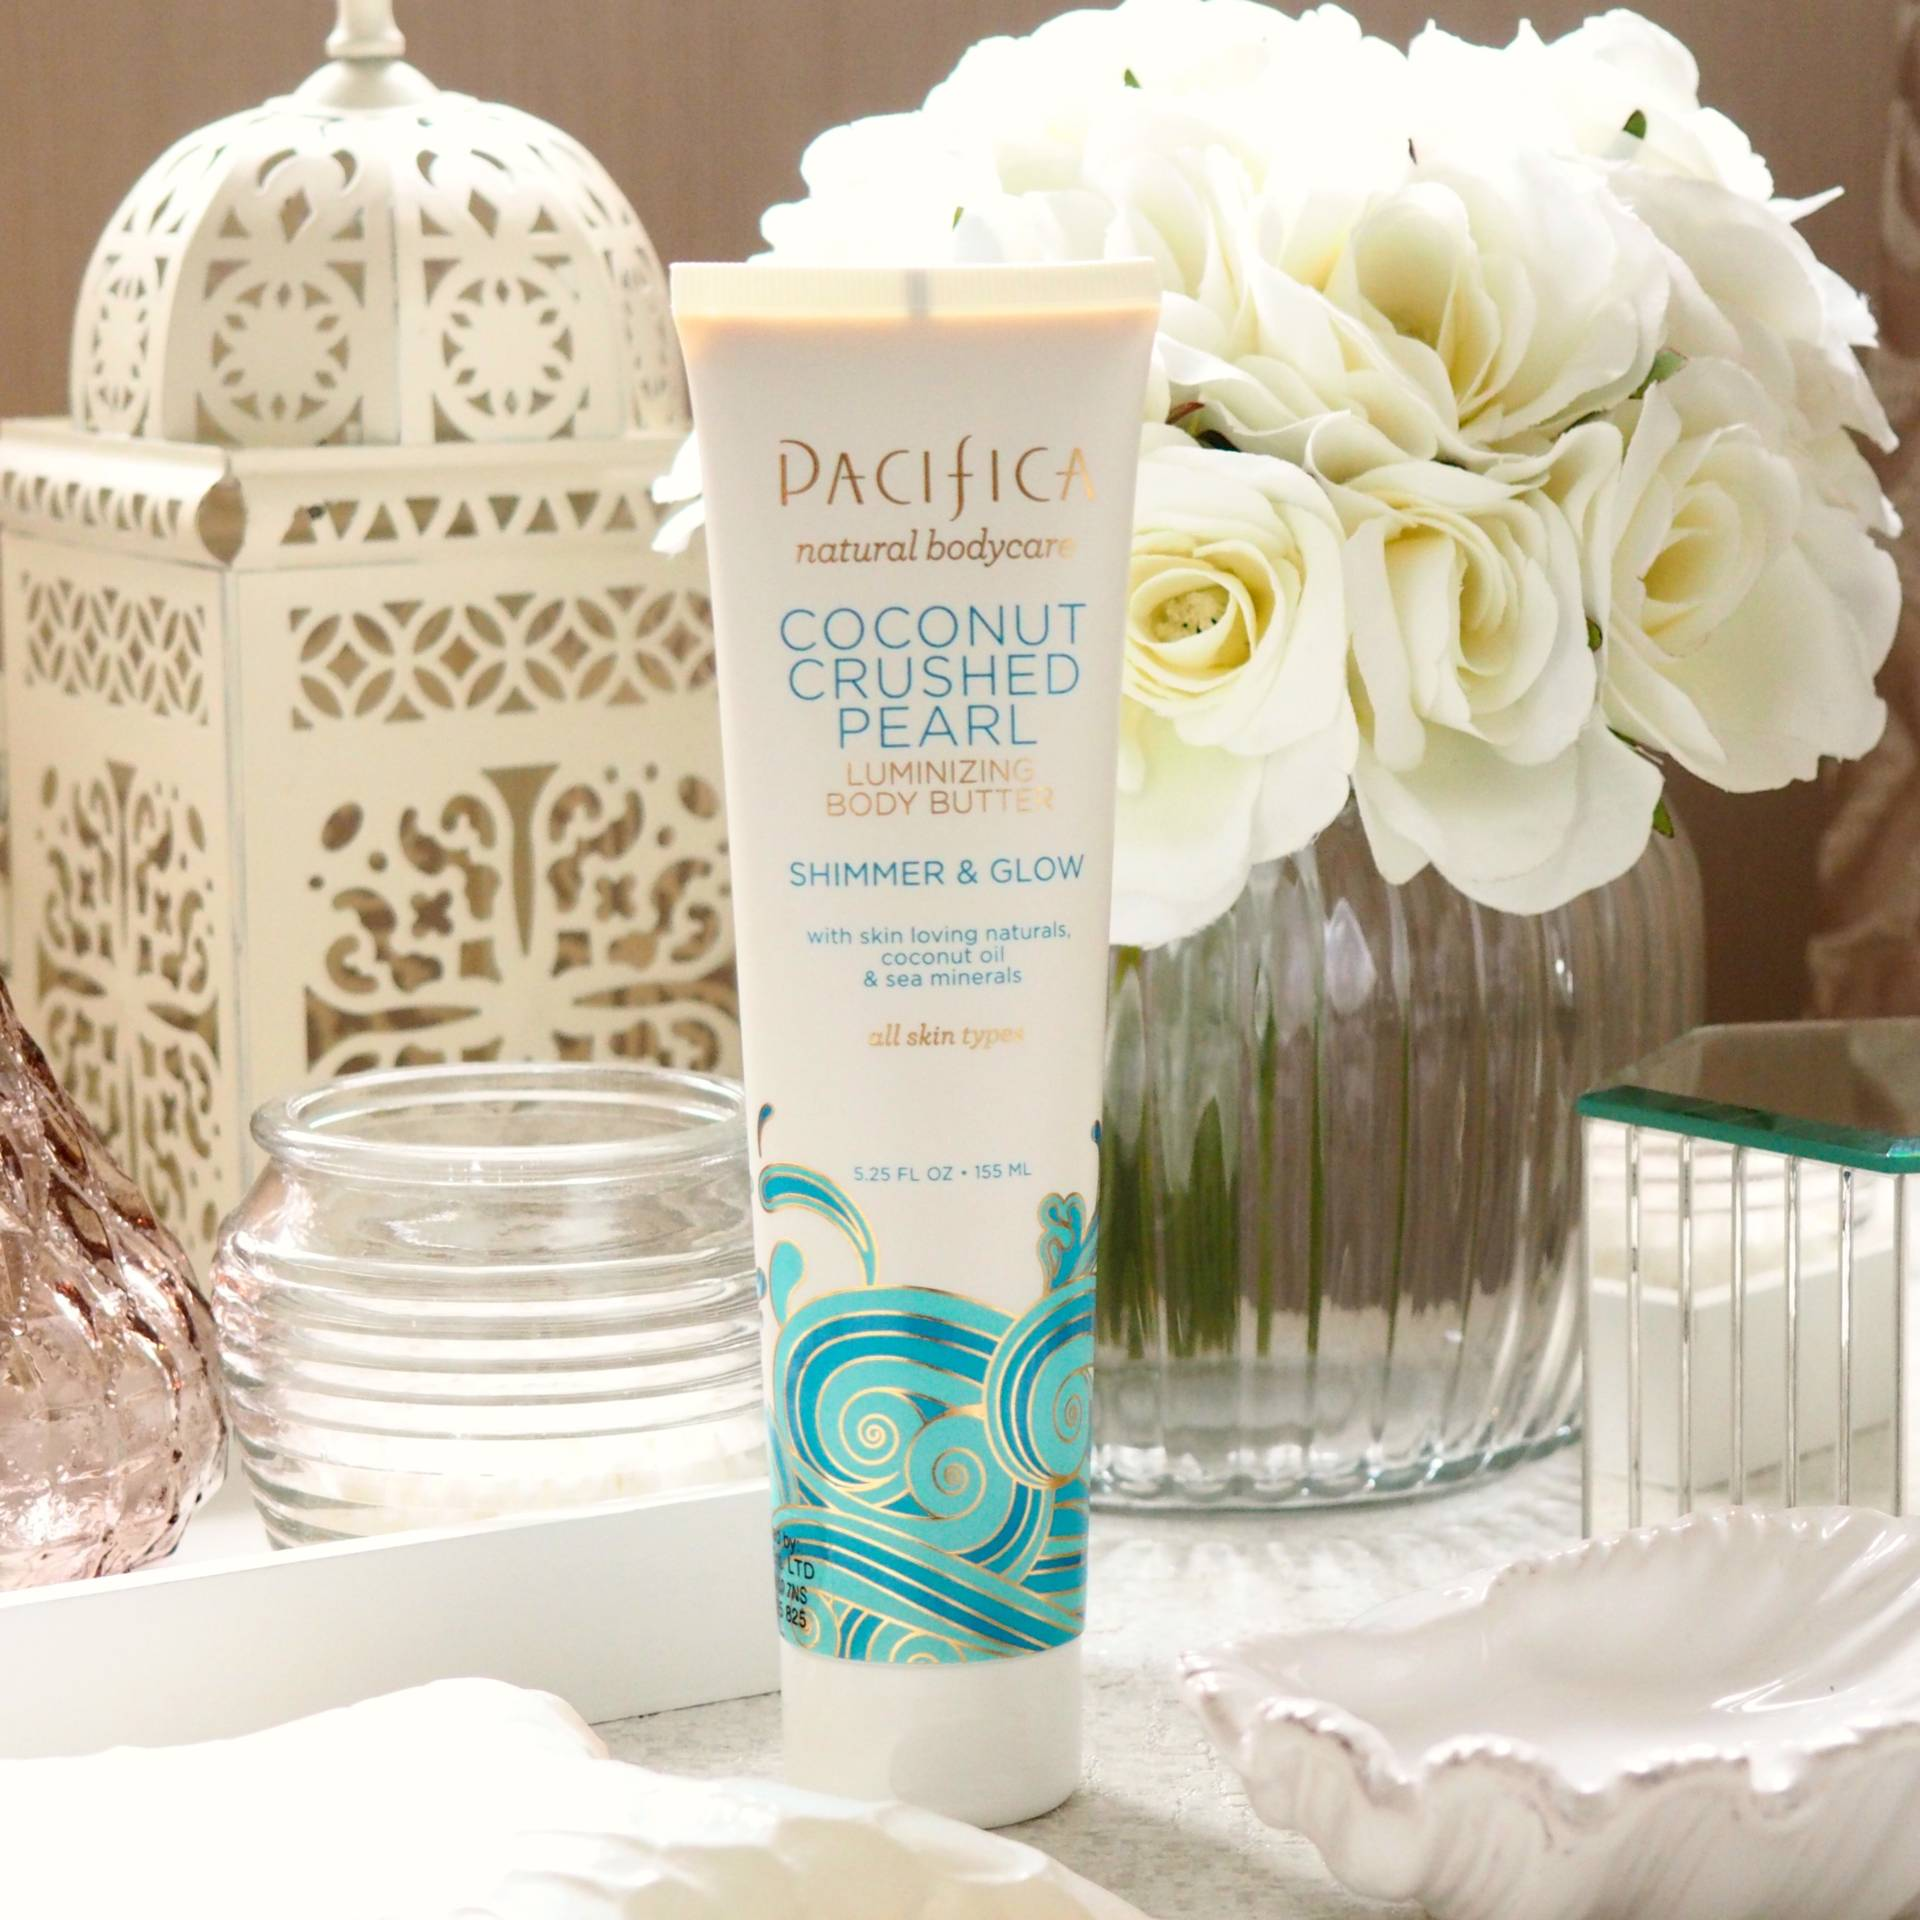 Bridal Skincare – Pacifica Body Shimmer & Glow